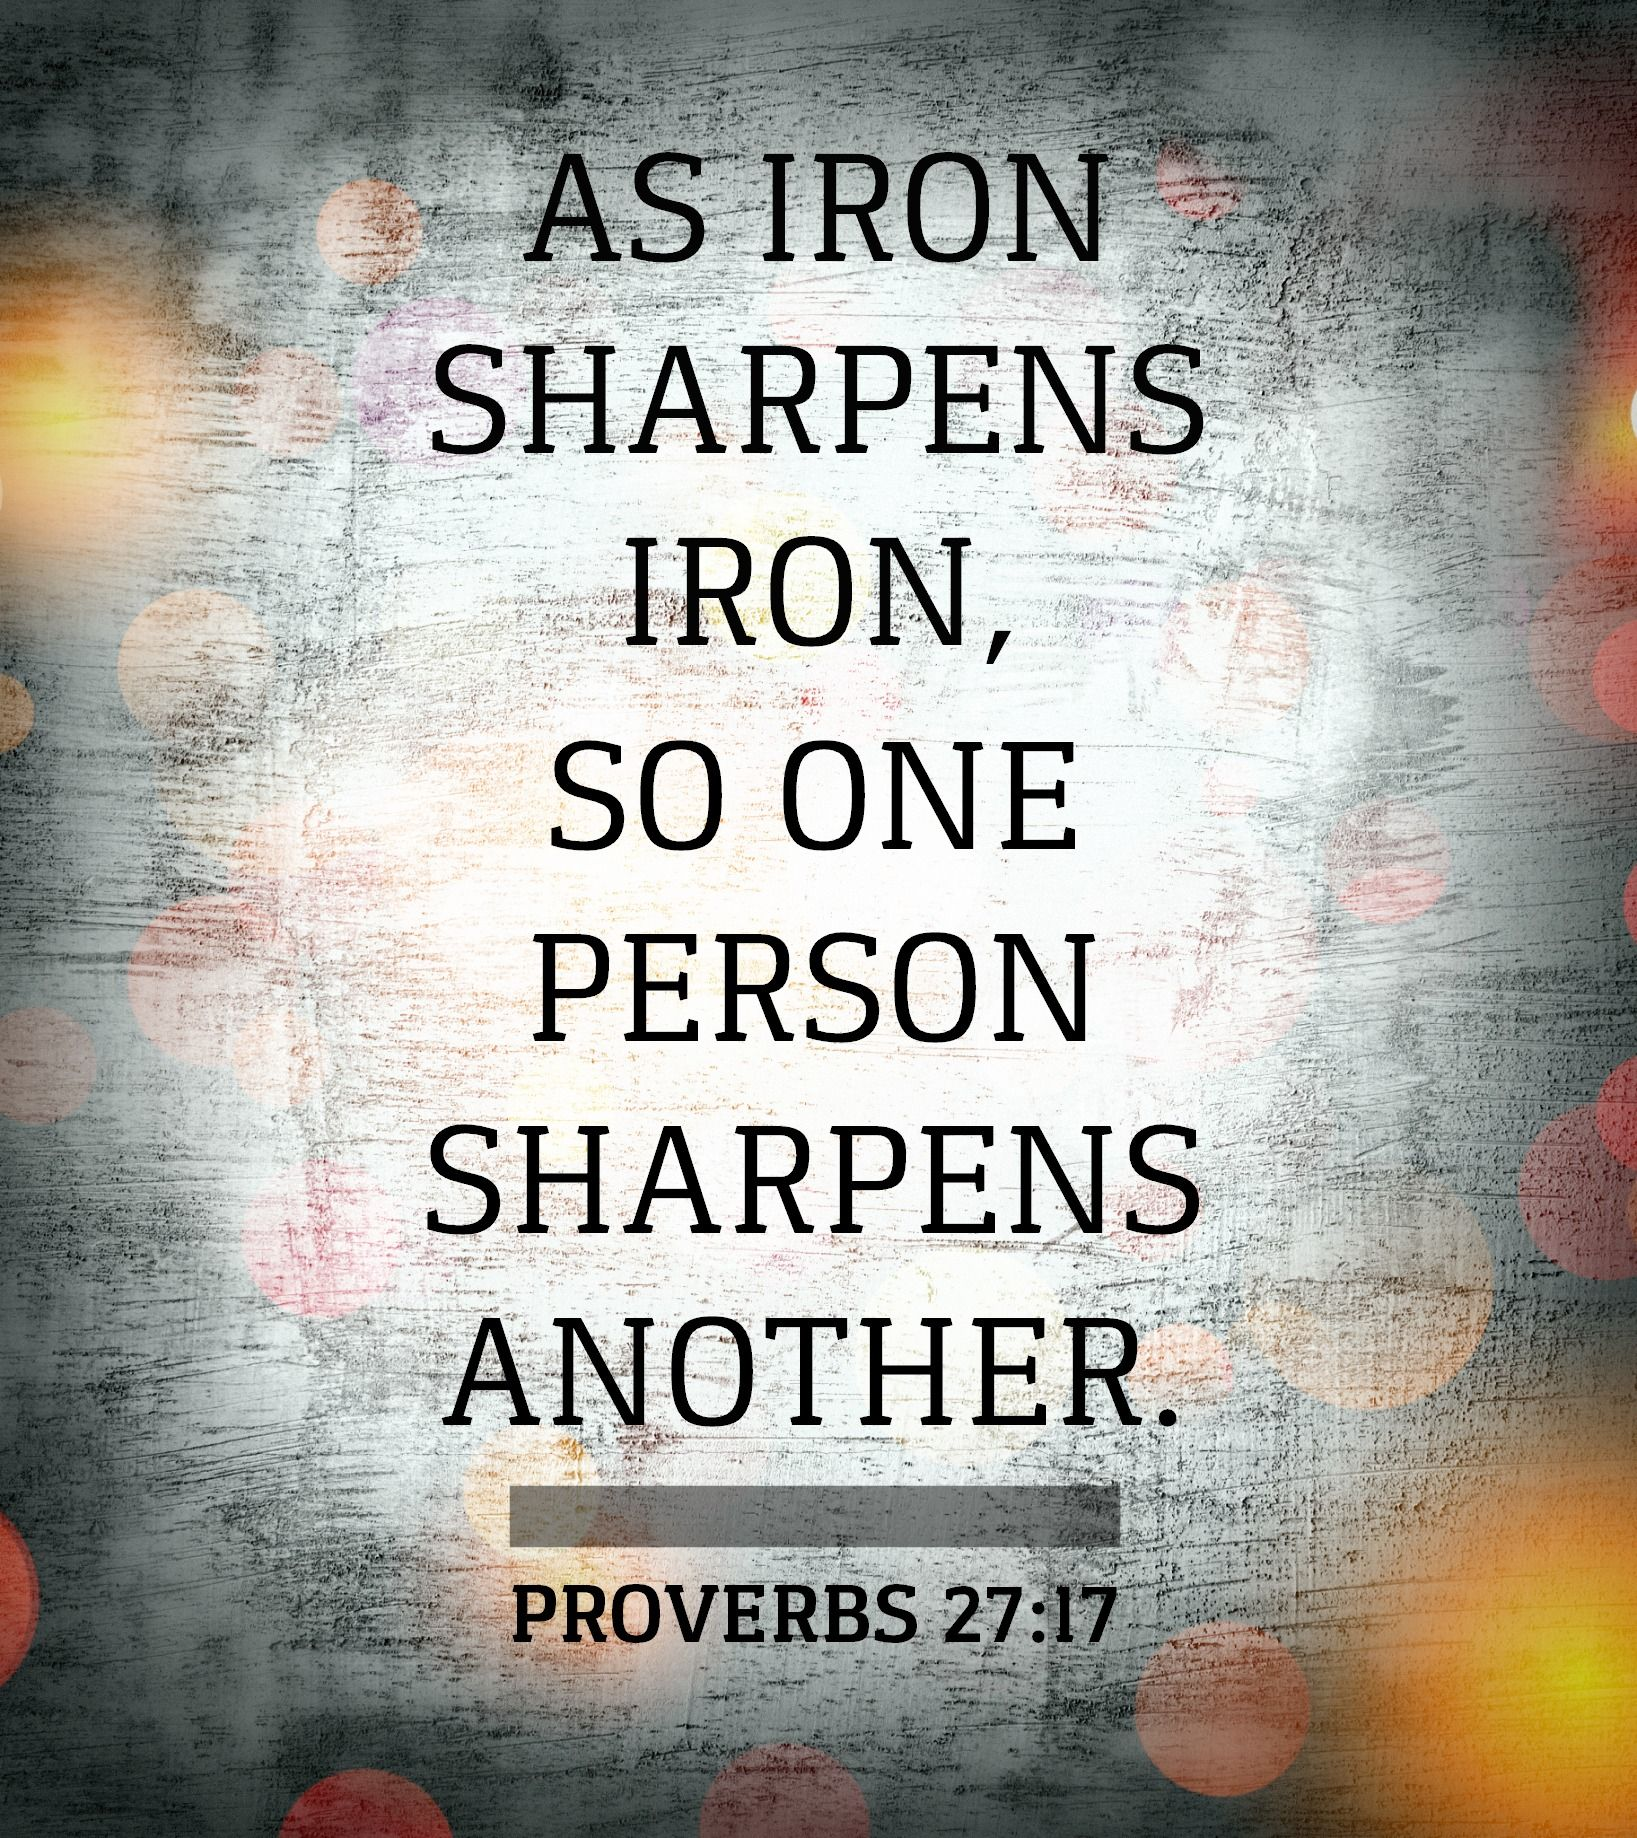 As Iron Sharpens Iron So One Person Sharpens Another Proverbs 27 17 Iron Sharpens Iron Scripture Scripture Quotes